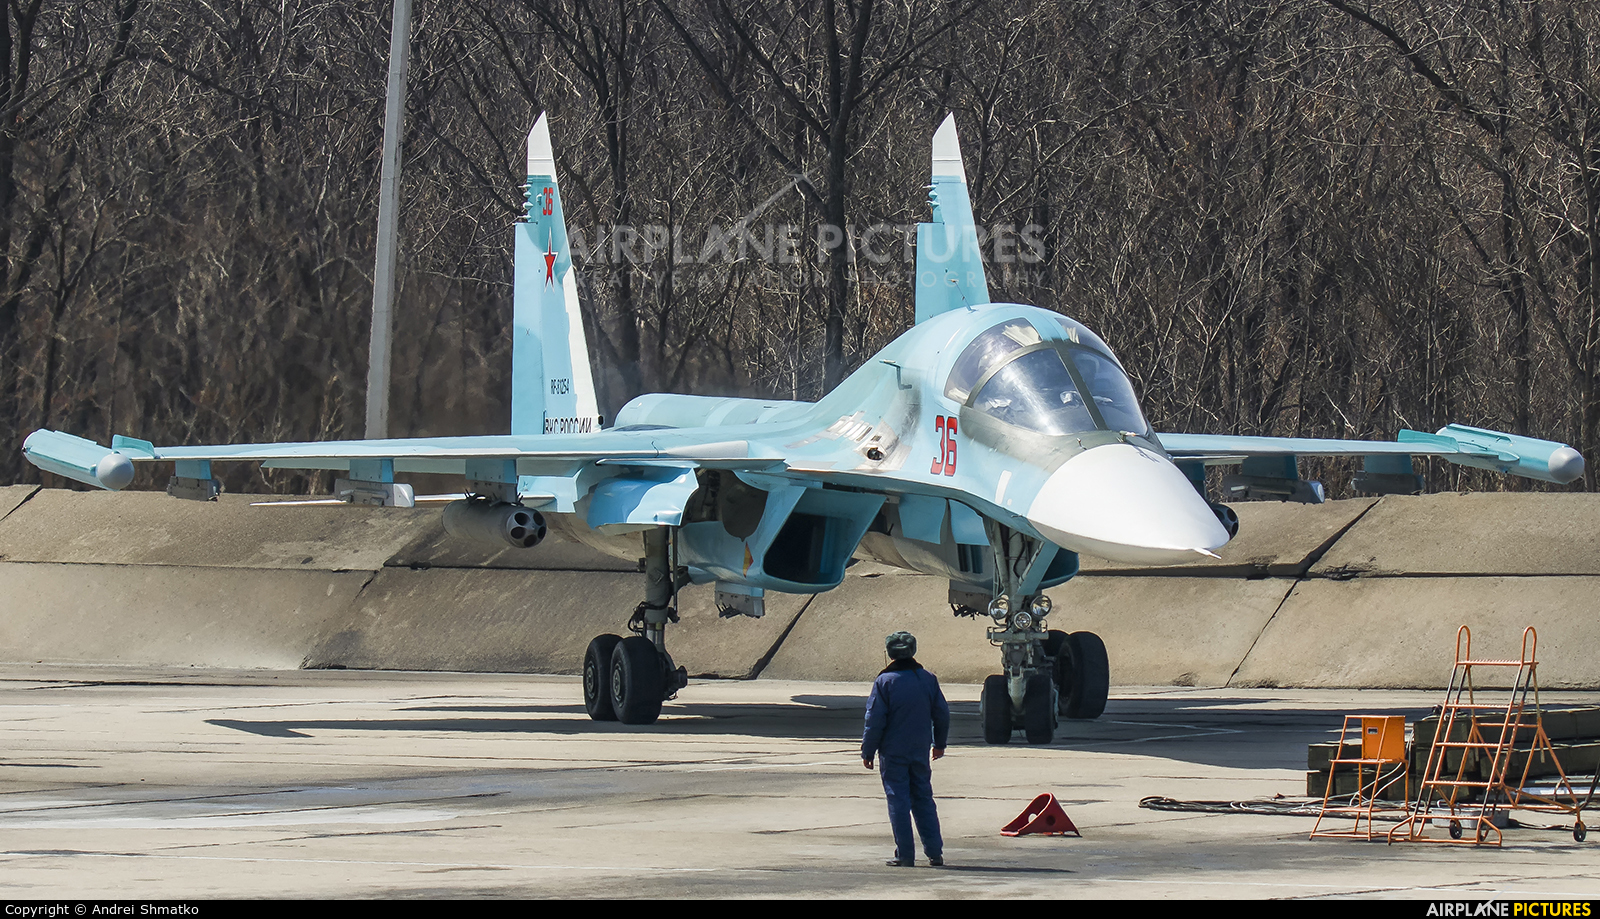 Russia - Air Force RF-81254 aircraft at Undisclosed Location